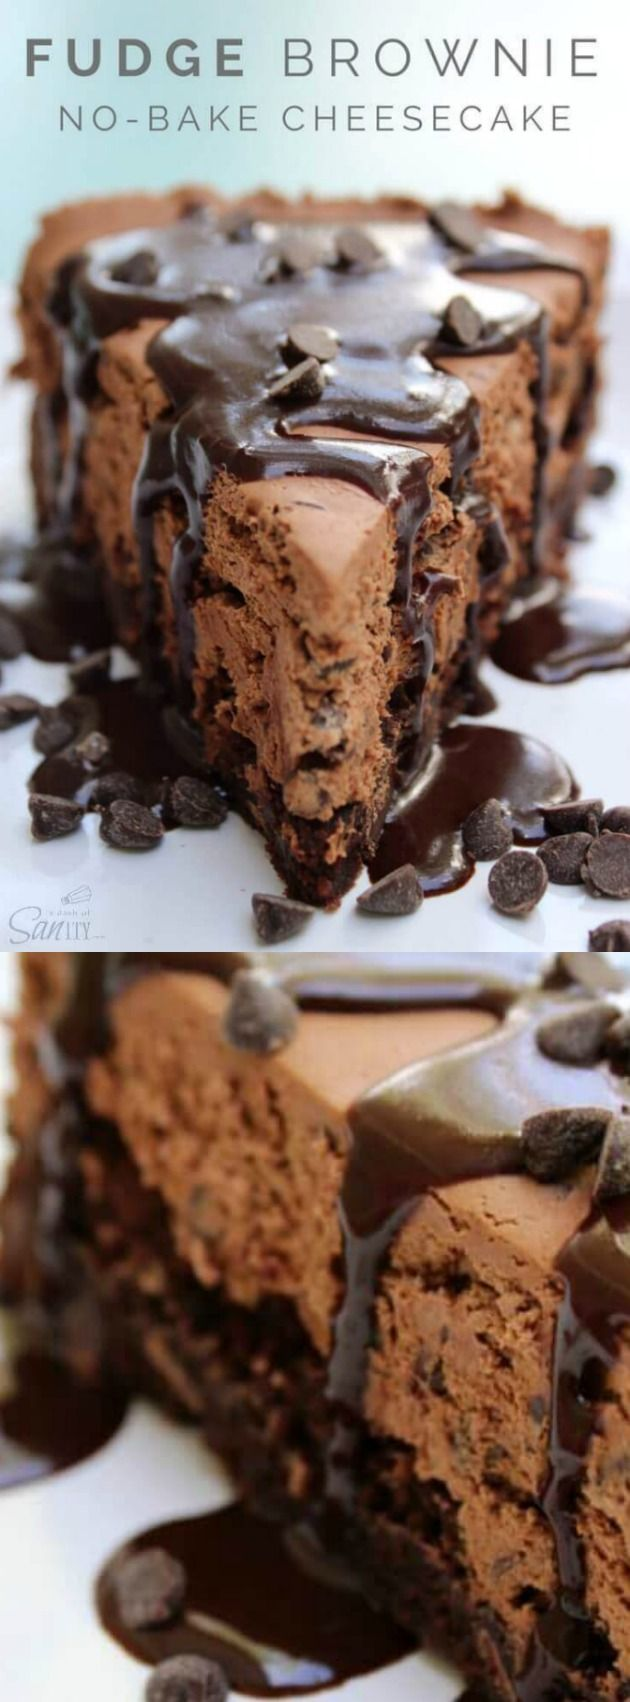 This Fudge Brownie No-Bake Cheesecake recipe from A Dash of Sanity is a chocolate lovers dream come true with it's double chocolate brownie, chocolate-chocolate chip no-bake cheesecake and a homemade fudge sauce. | Posted by: DebbieNet.com